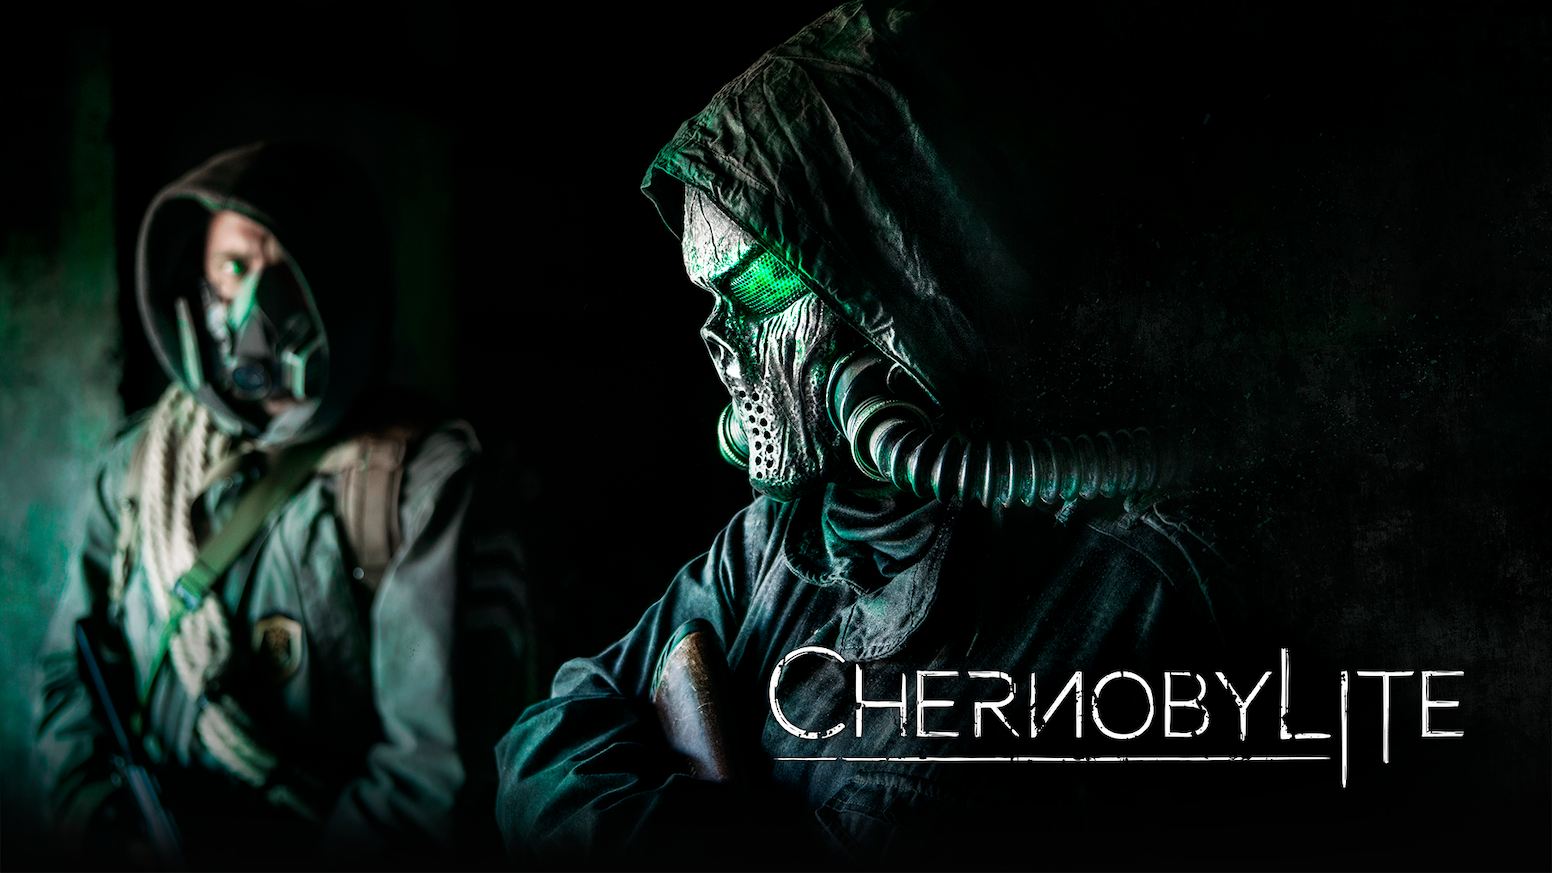 Survive and reveal the secrets of Chernobyl in a science-fiction survival horror with unique narratives, combat, and crafting.